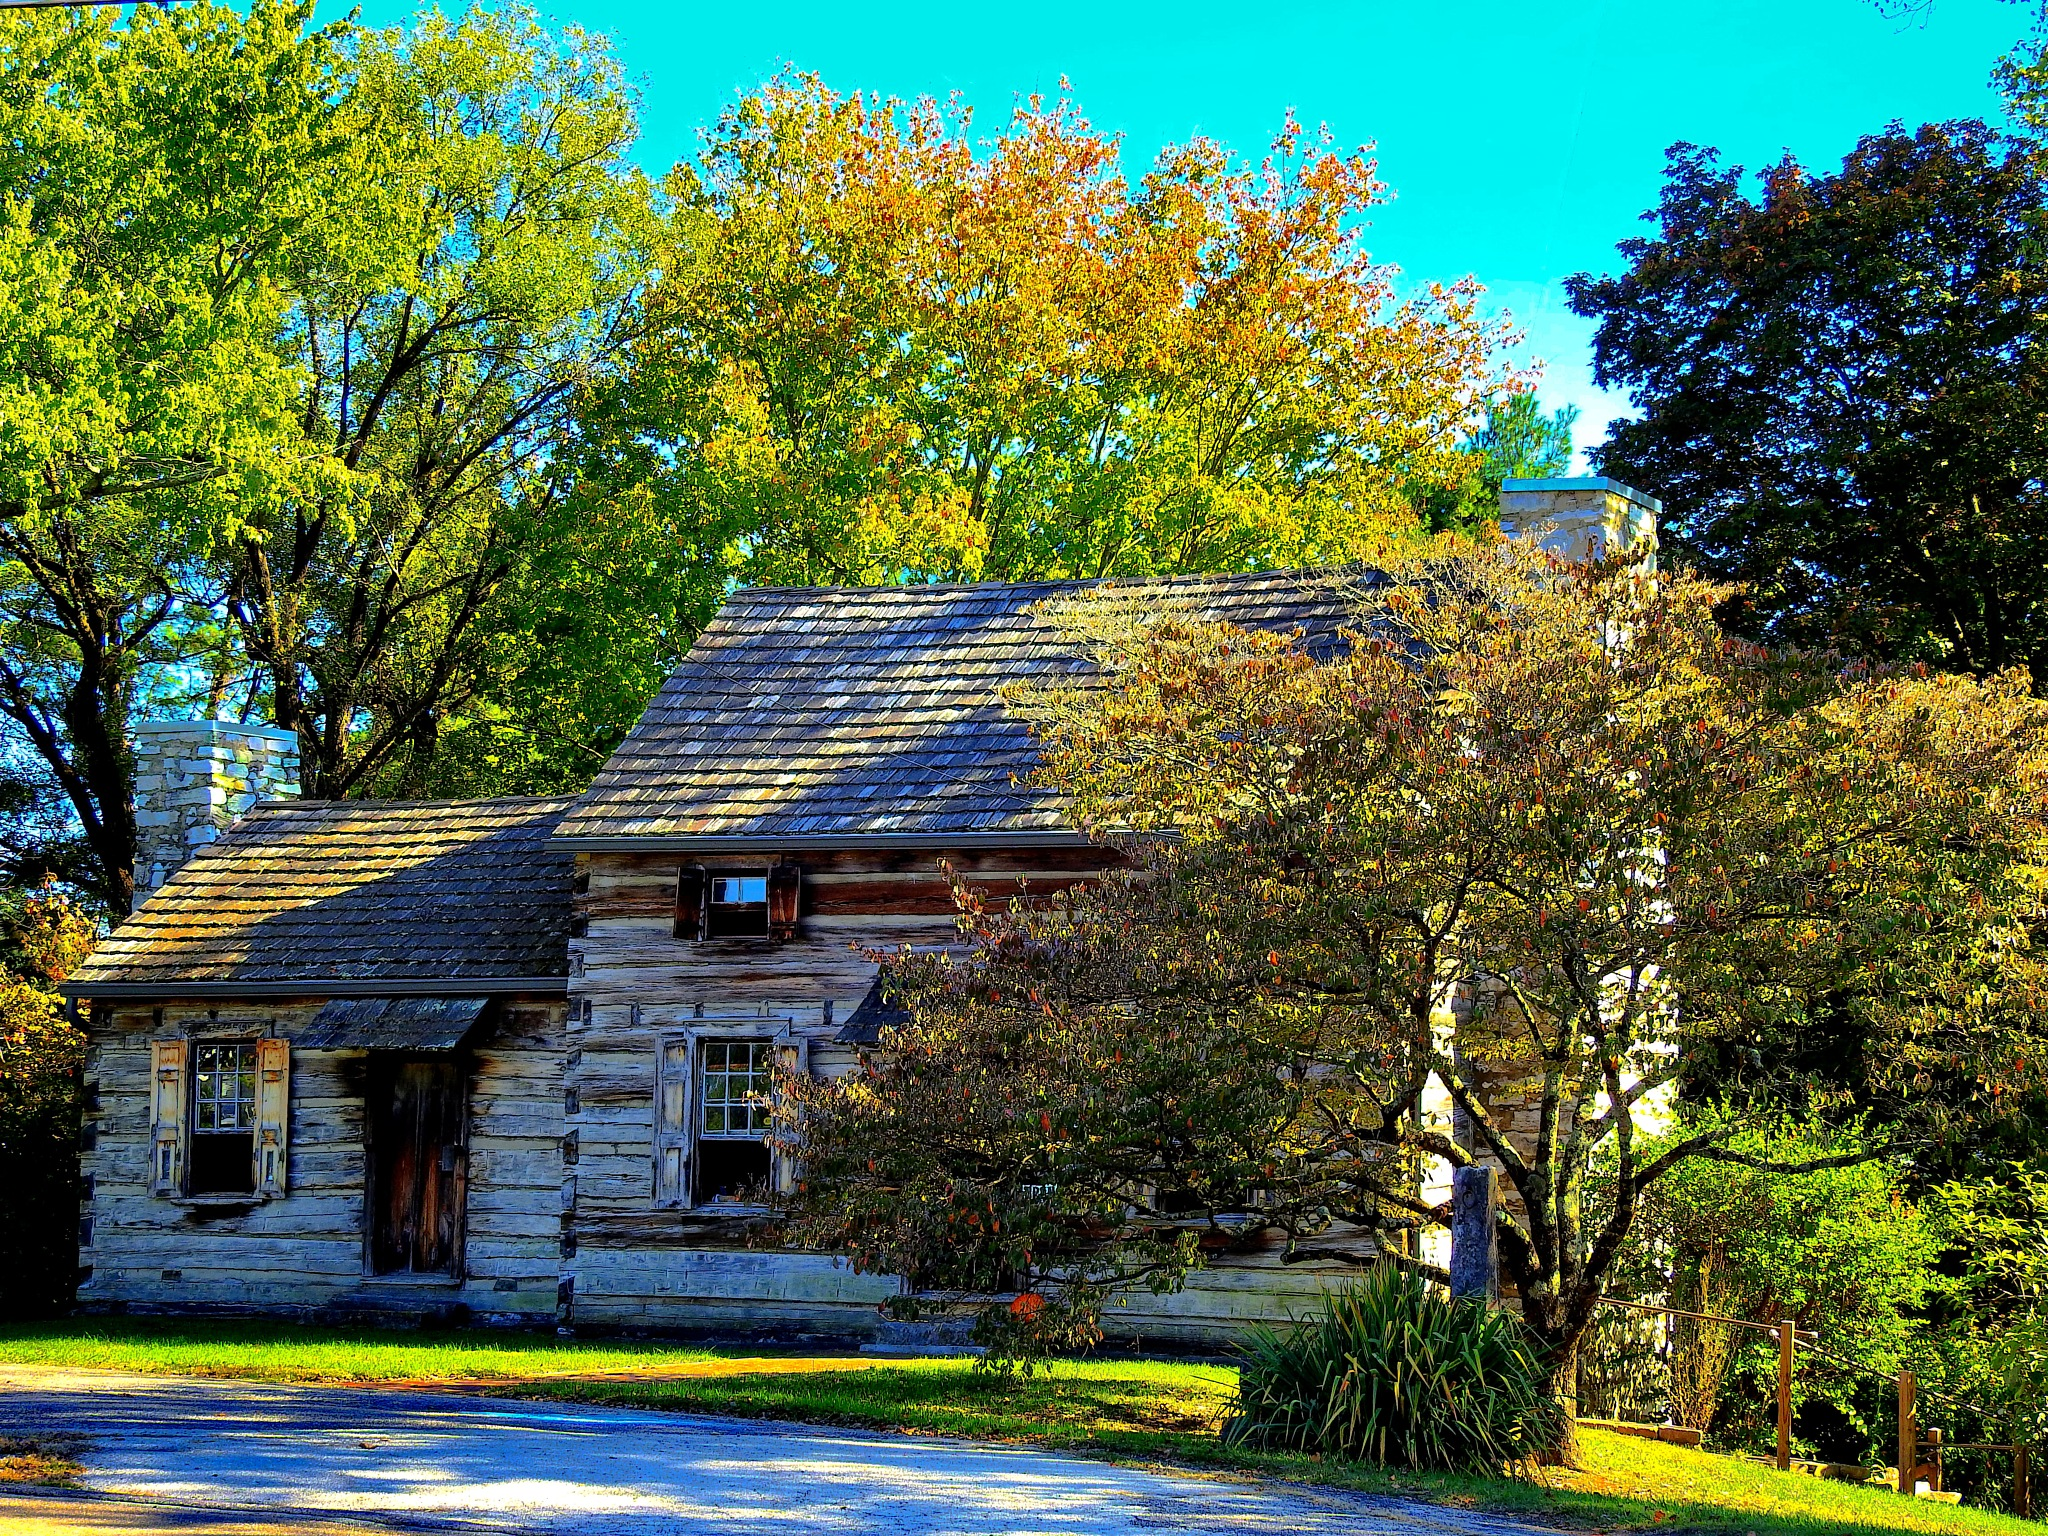 Davy Crockett Tavern Museum by Patty Stockton